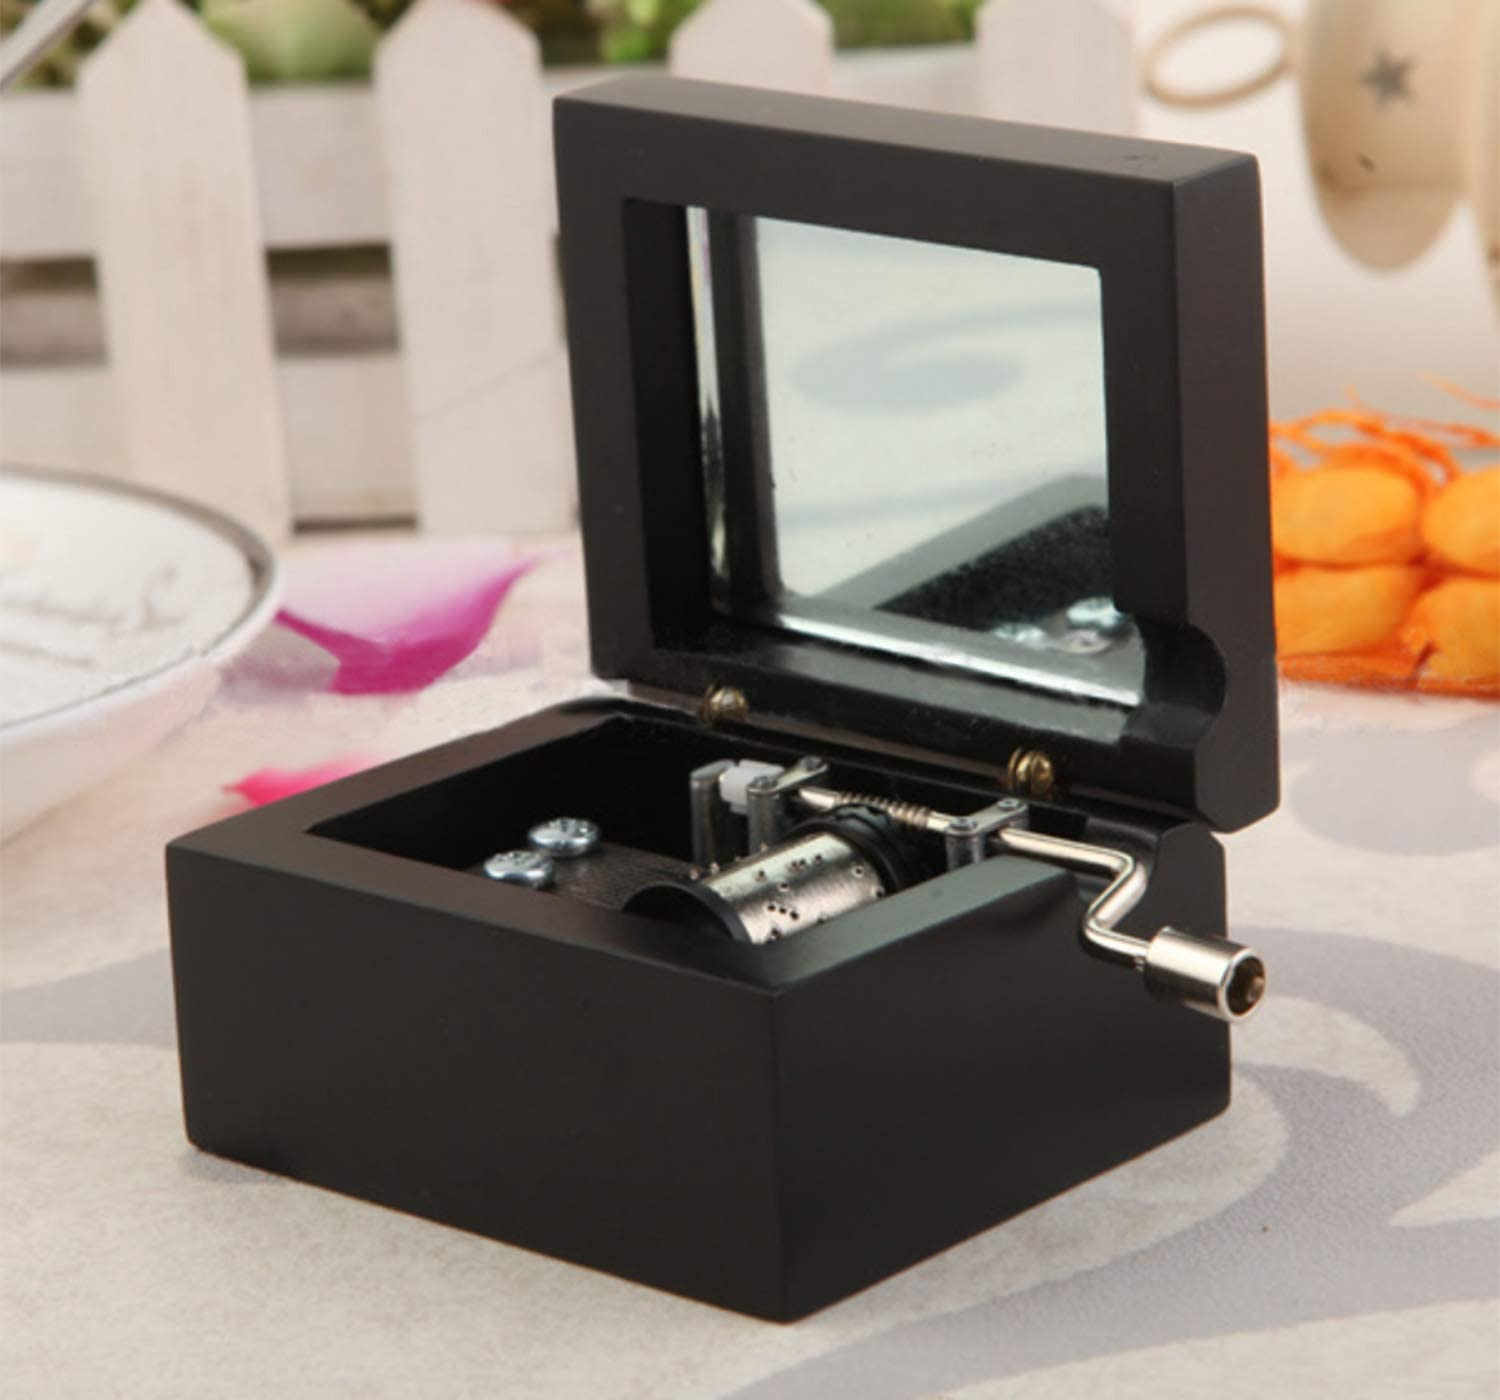 ACCOCO Personalizable Wood Musical Box Music Box Melody You are My Sunshine (Black, You are My Sunshine)